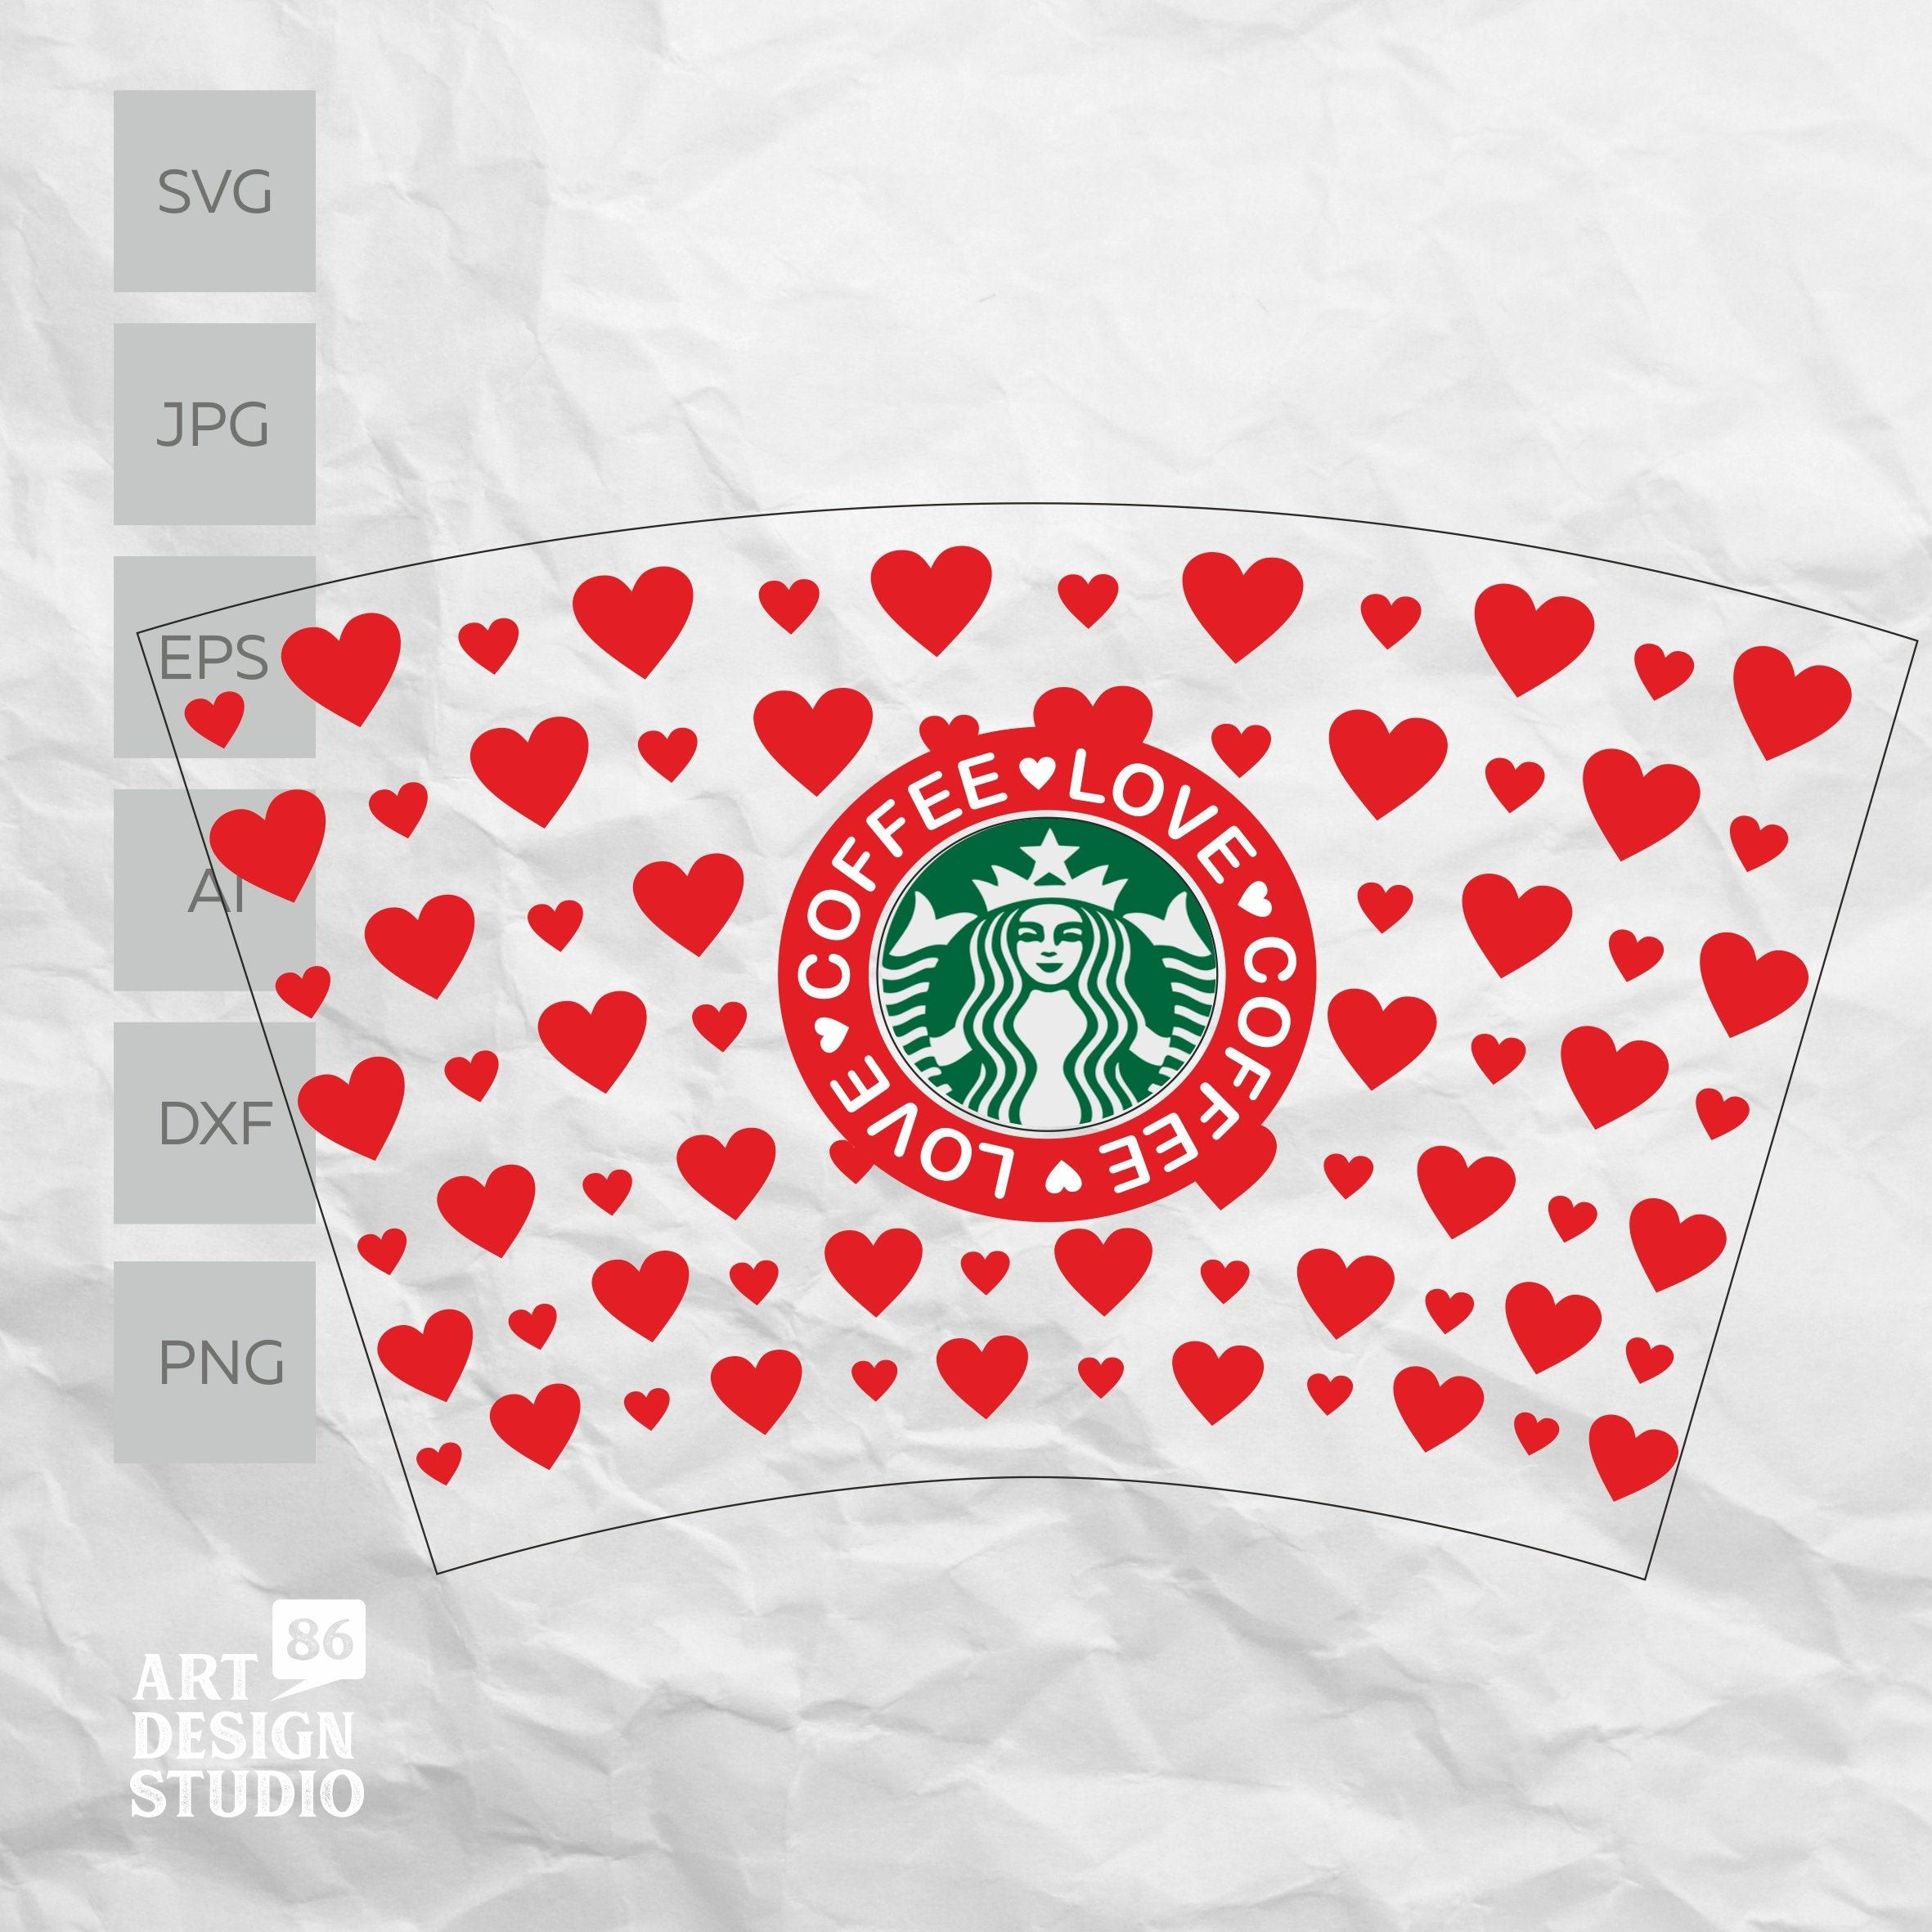 Full Wrap Template for Starbucks Venti Cold Cup for DIY